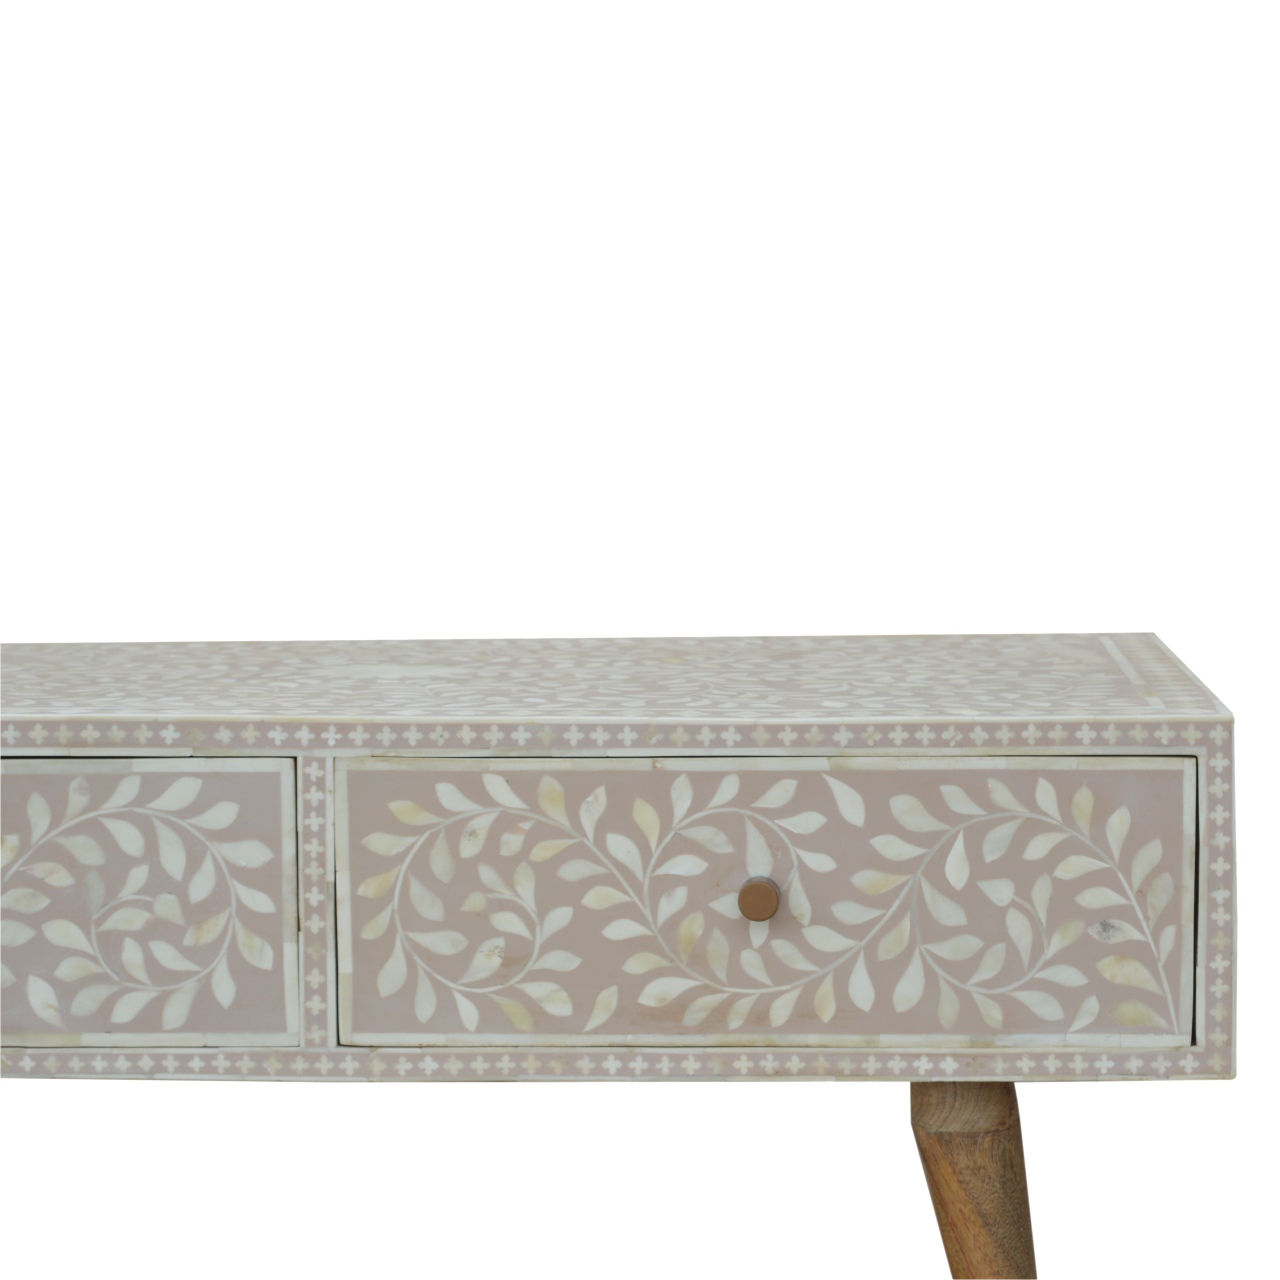 Light-Taupe-Floral-Bone-Inlay-Coffee-Table-4